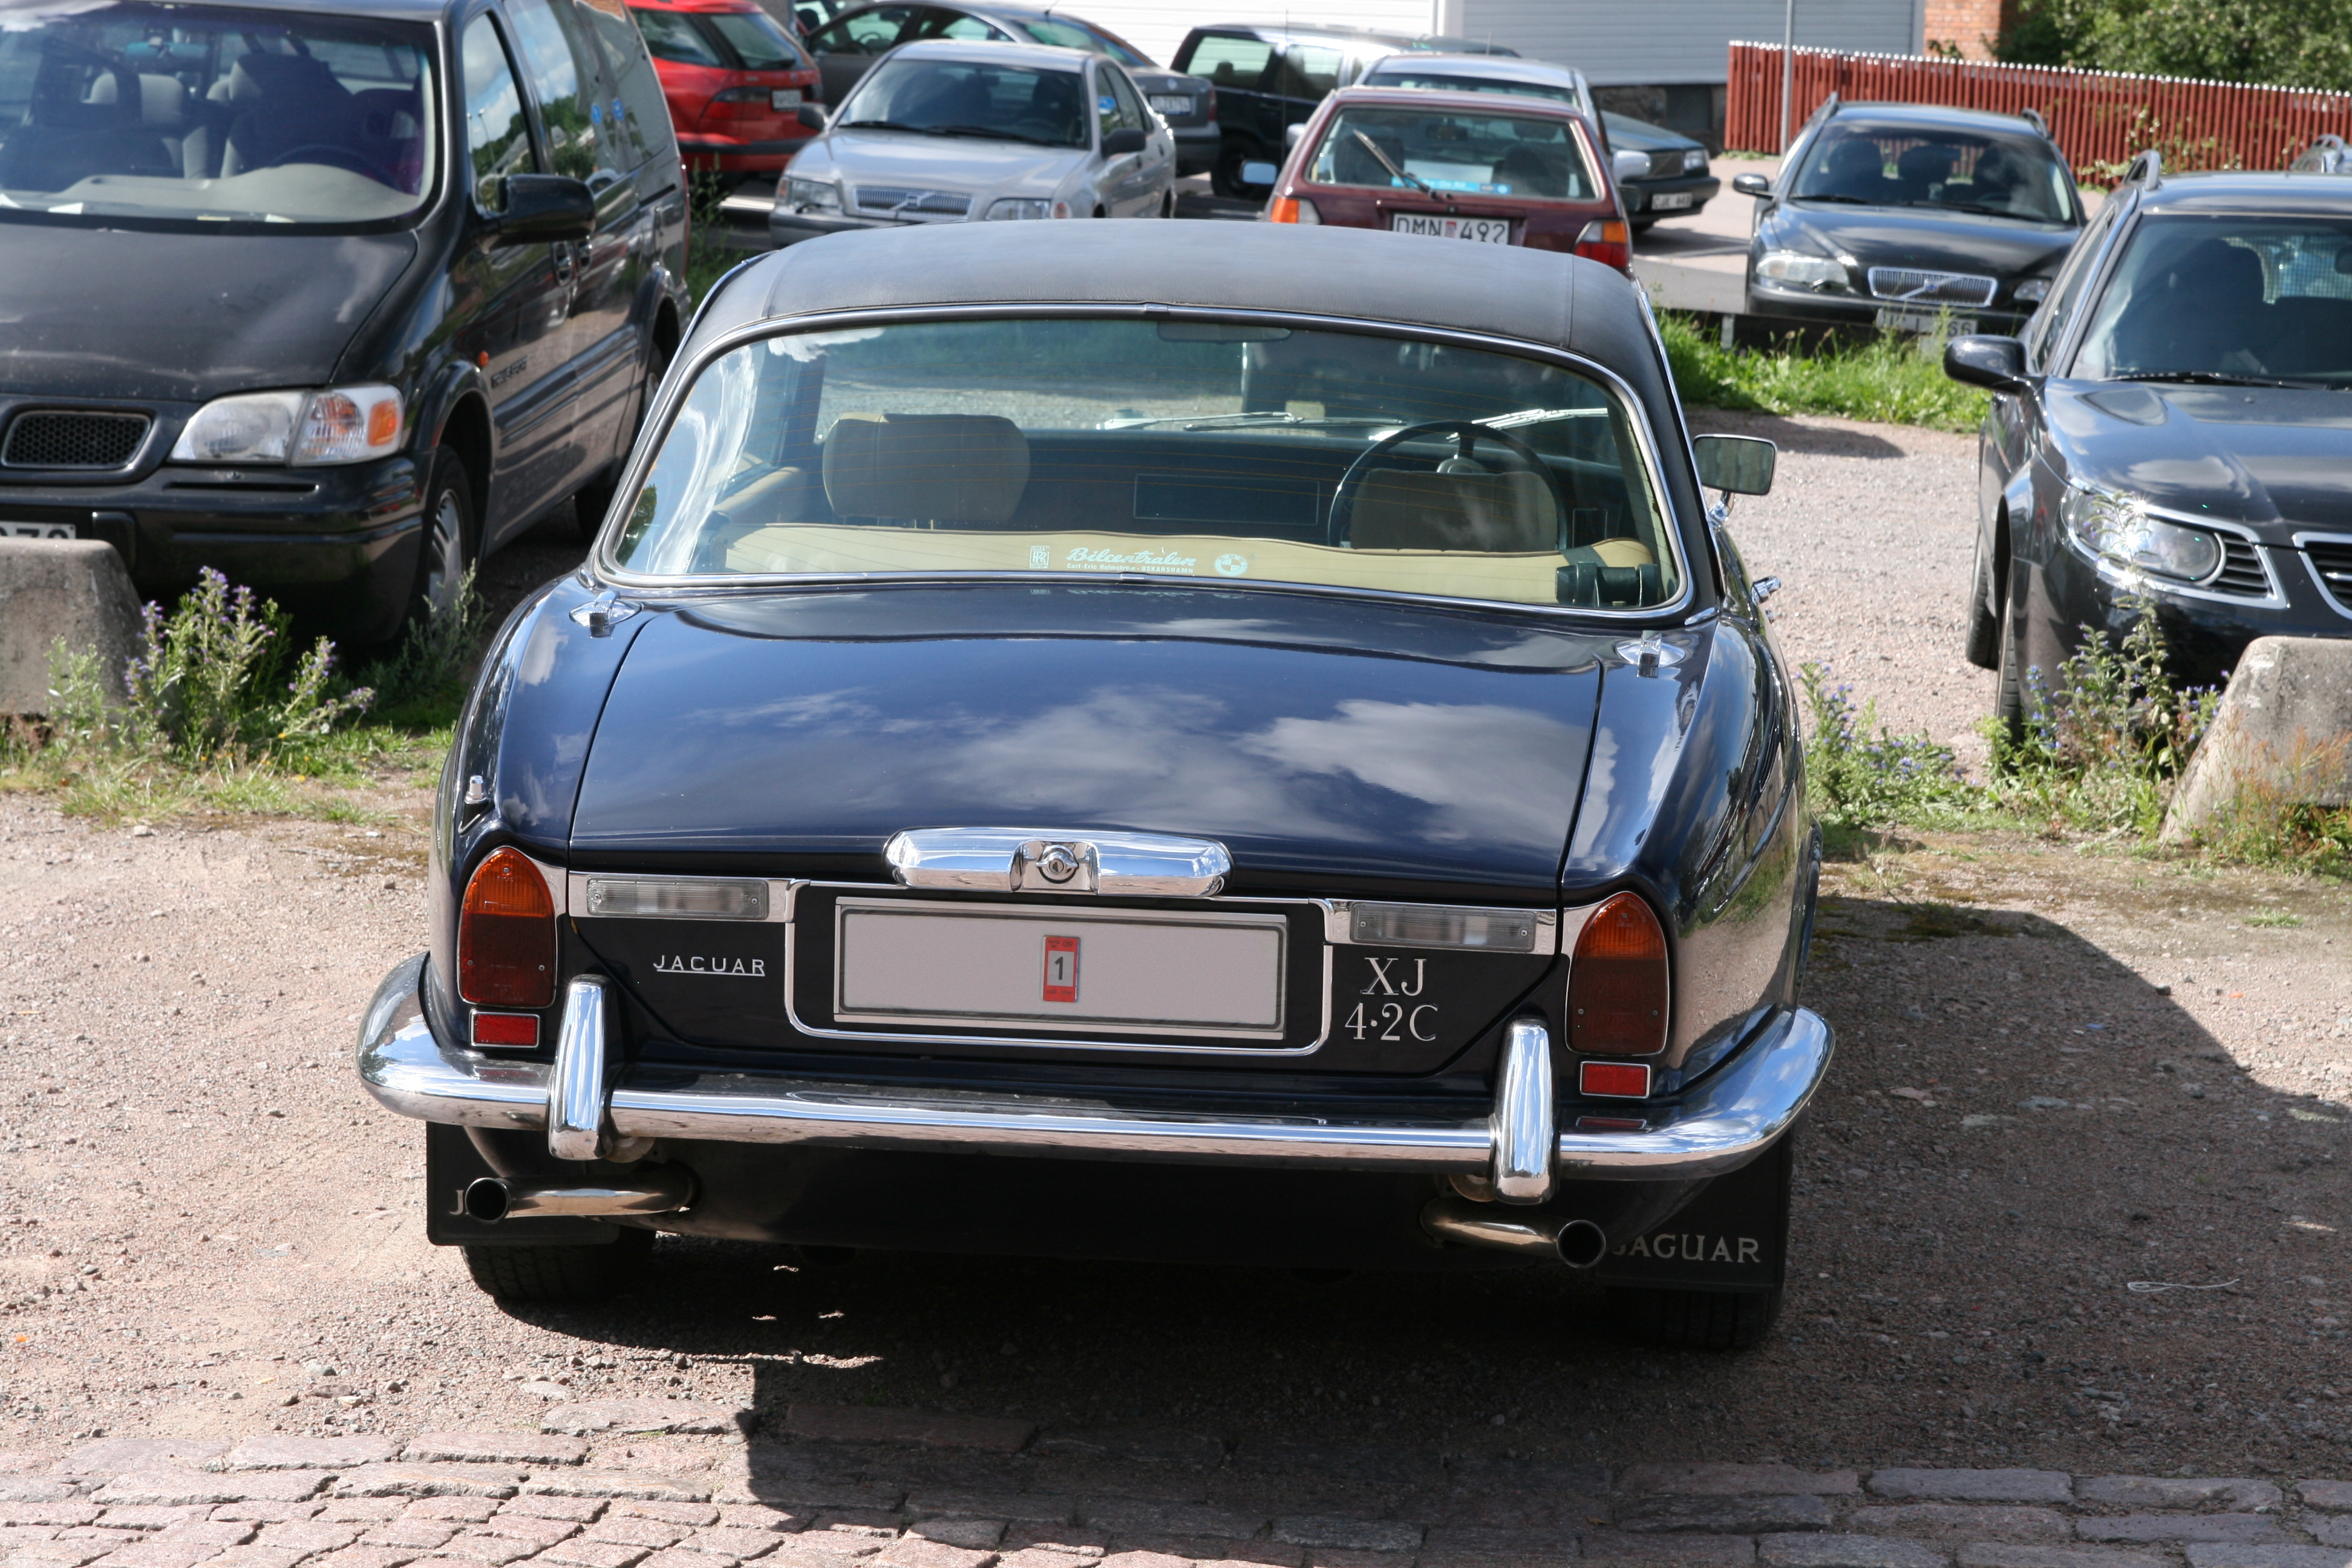 filejaguar xj 42c 1975 rearjpg